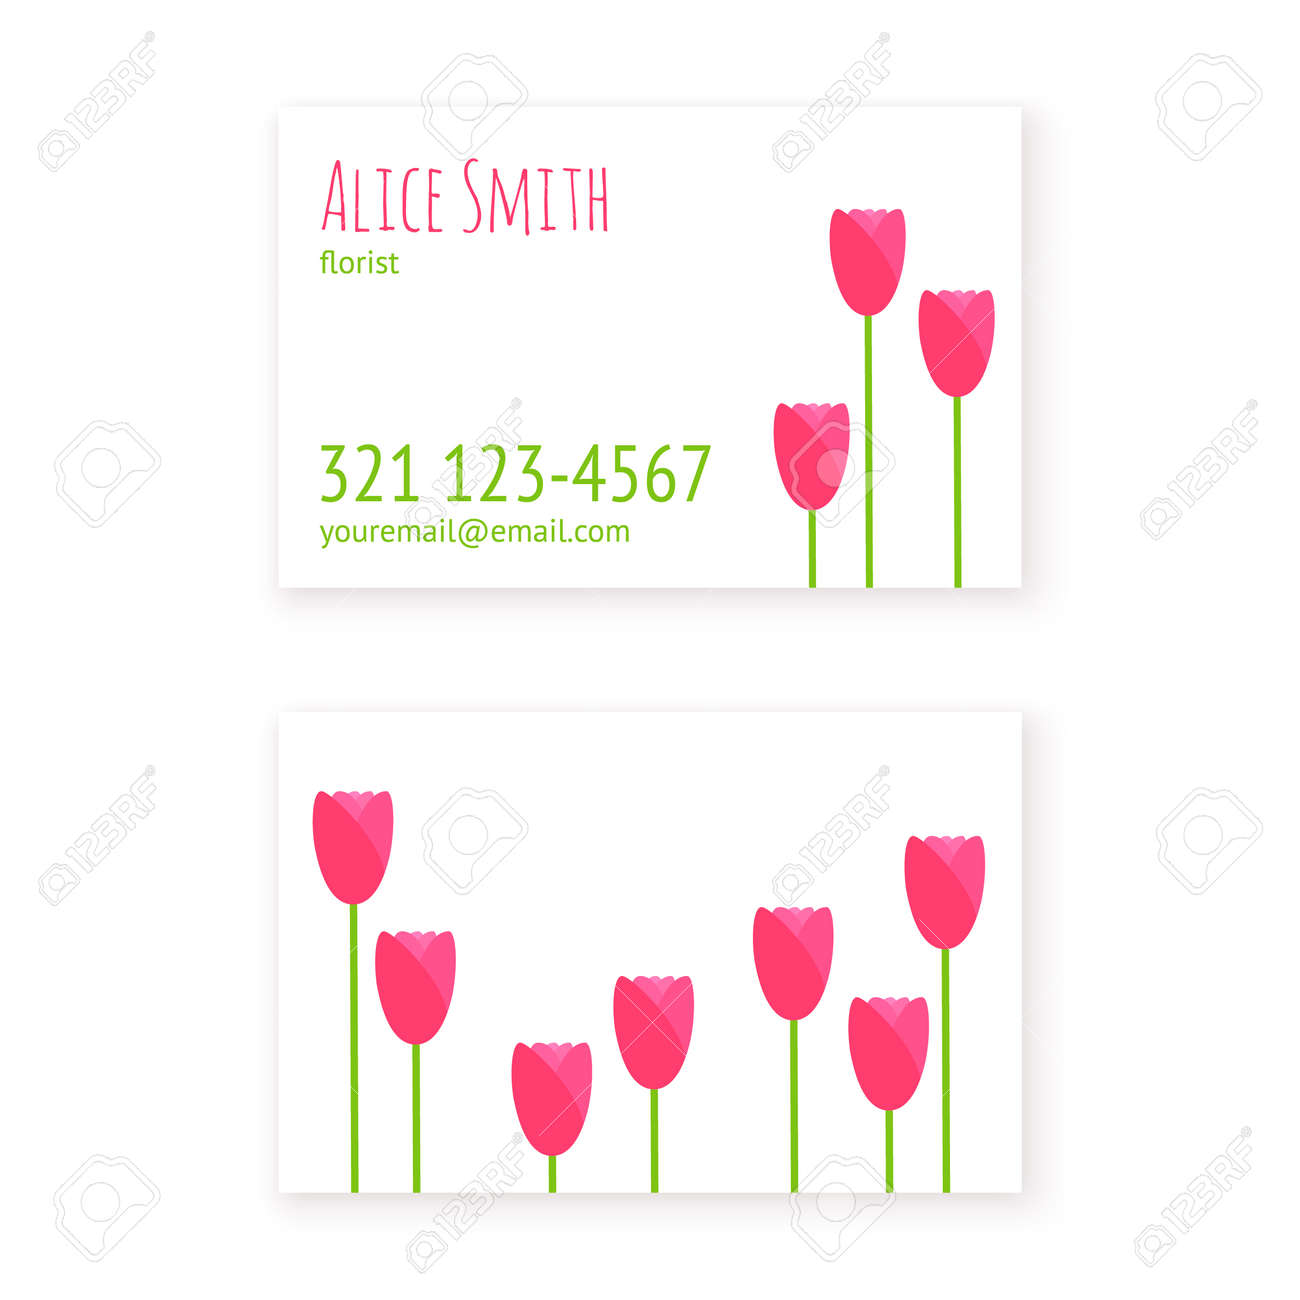 Flower Business Cards Choice Image - Business Card Template